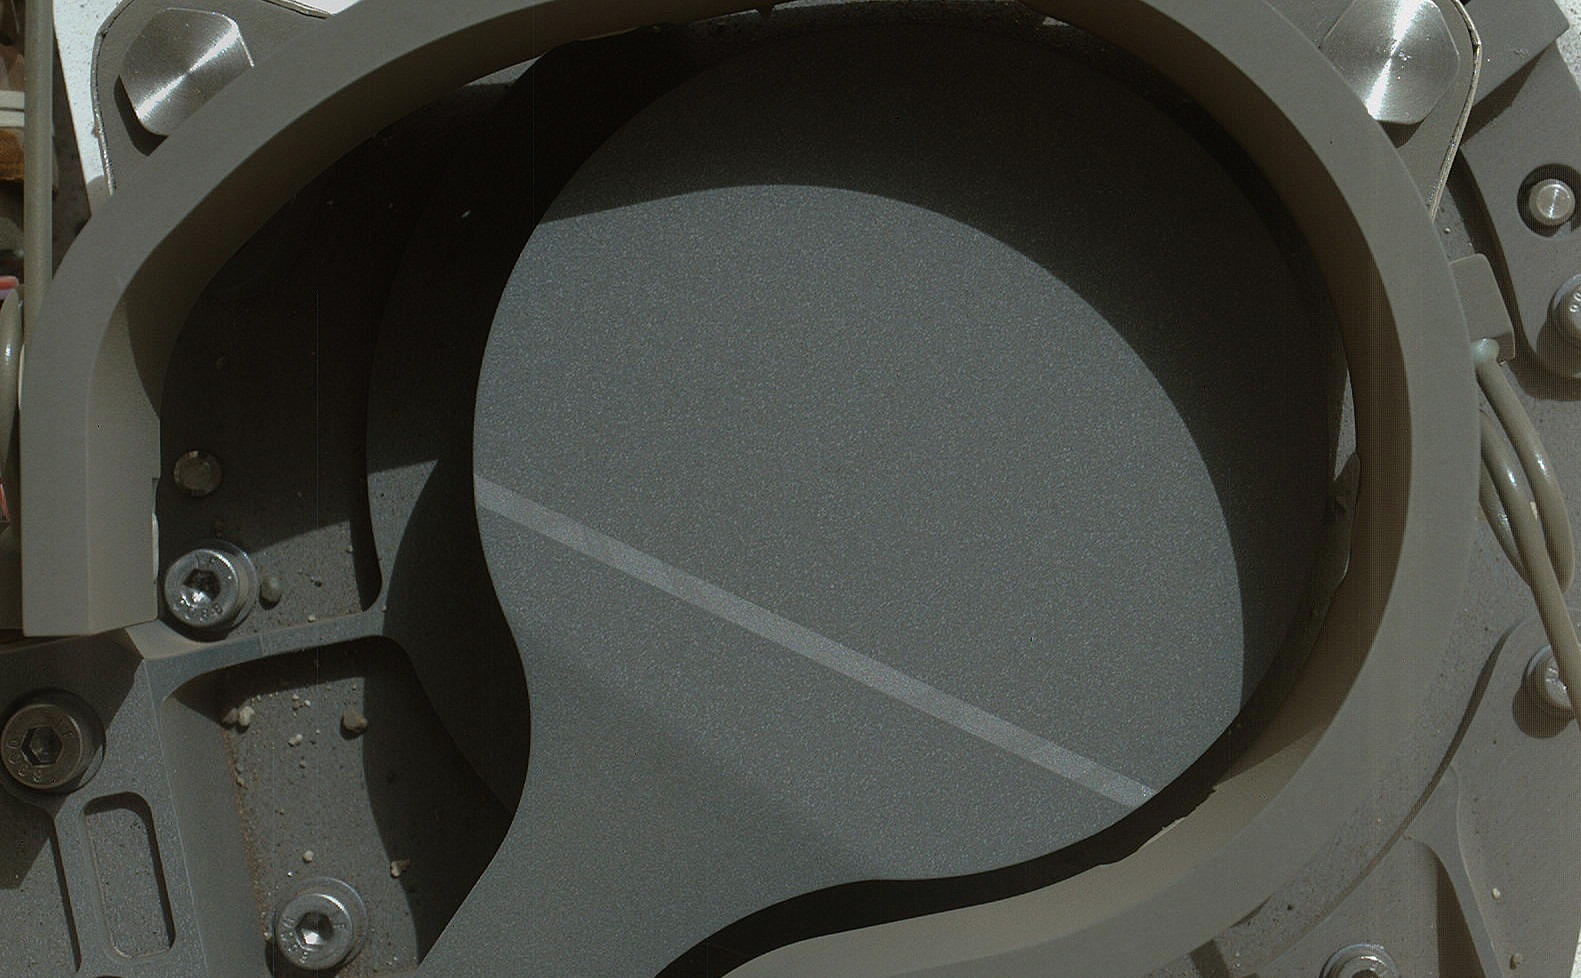 This image from NASA's Curiosity rover shows the cover on an inlet that will receive powdered rock and soil samples for analysis.